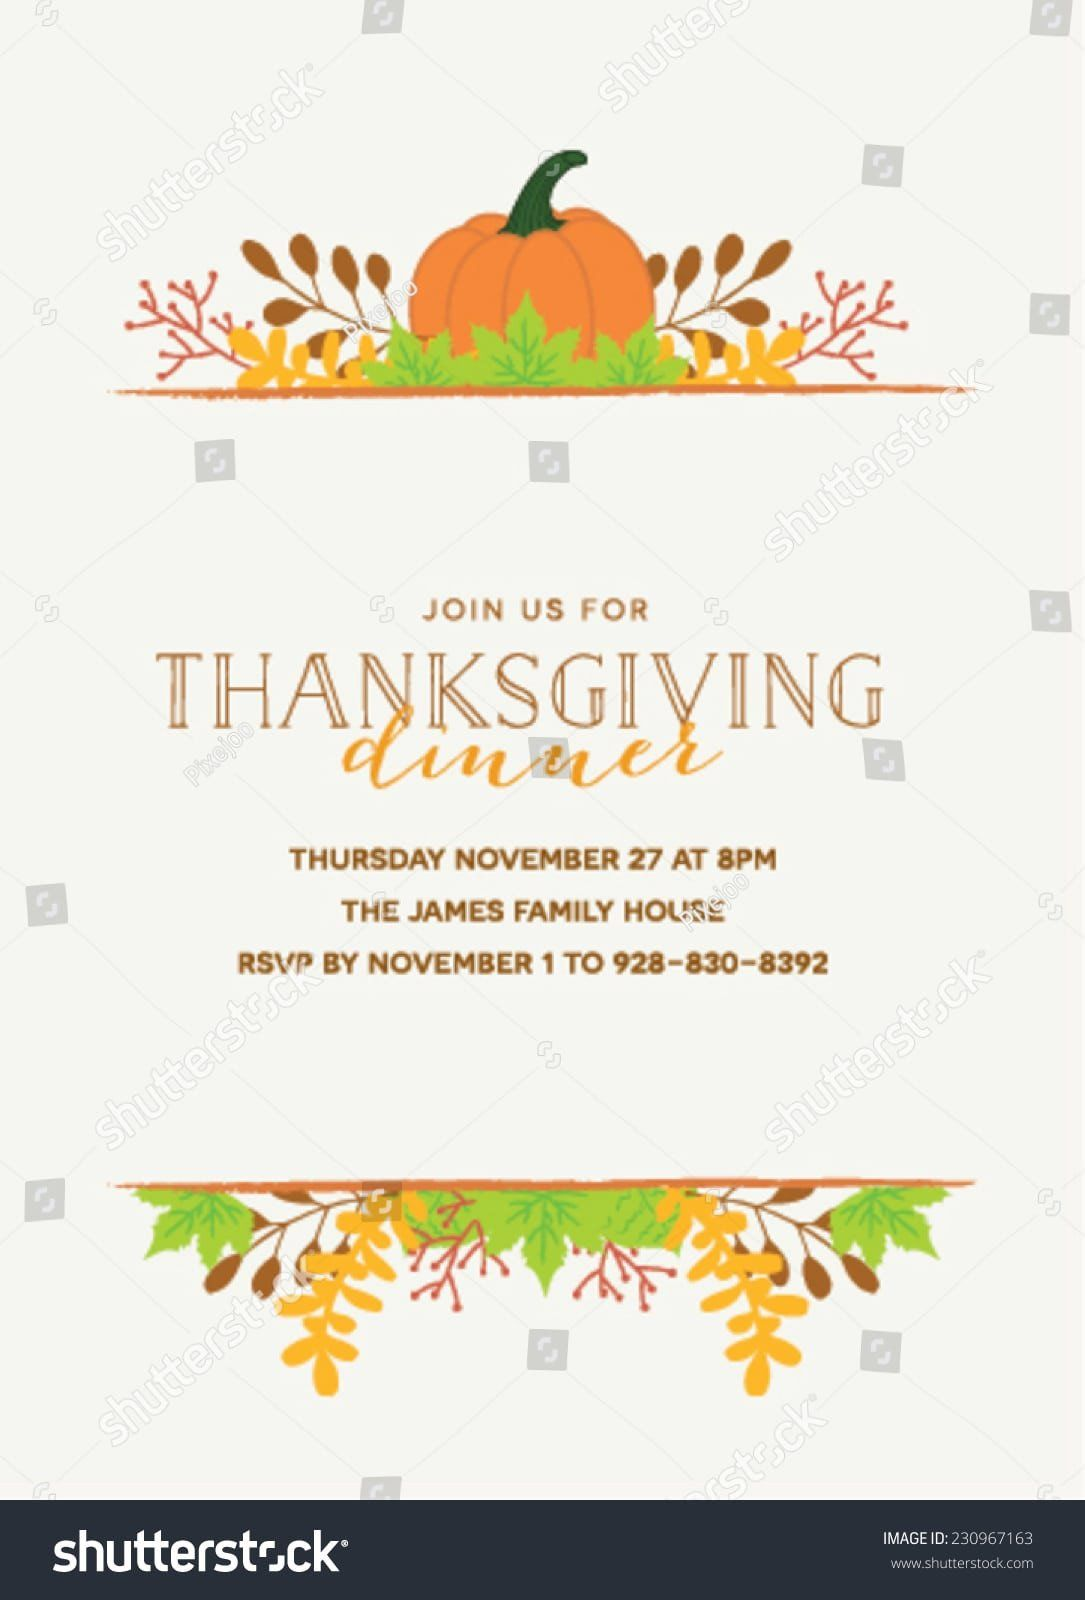 Thanksgiving Invitation Templates Free Word Thanksgiving Invitation Templat Thanksgiving Invitation Thanksgiving Invitation Template Dinner Invitation Template